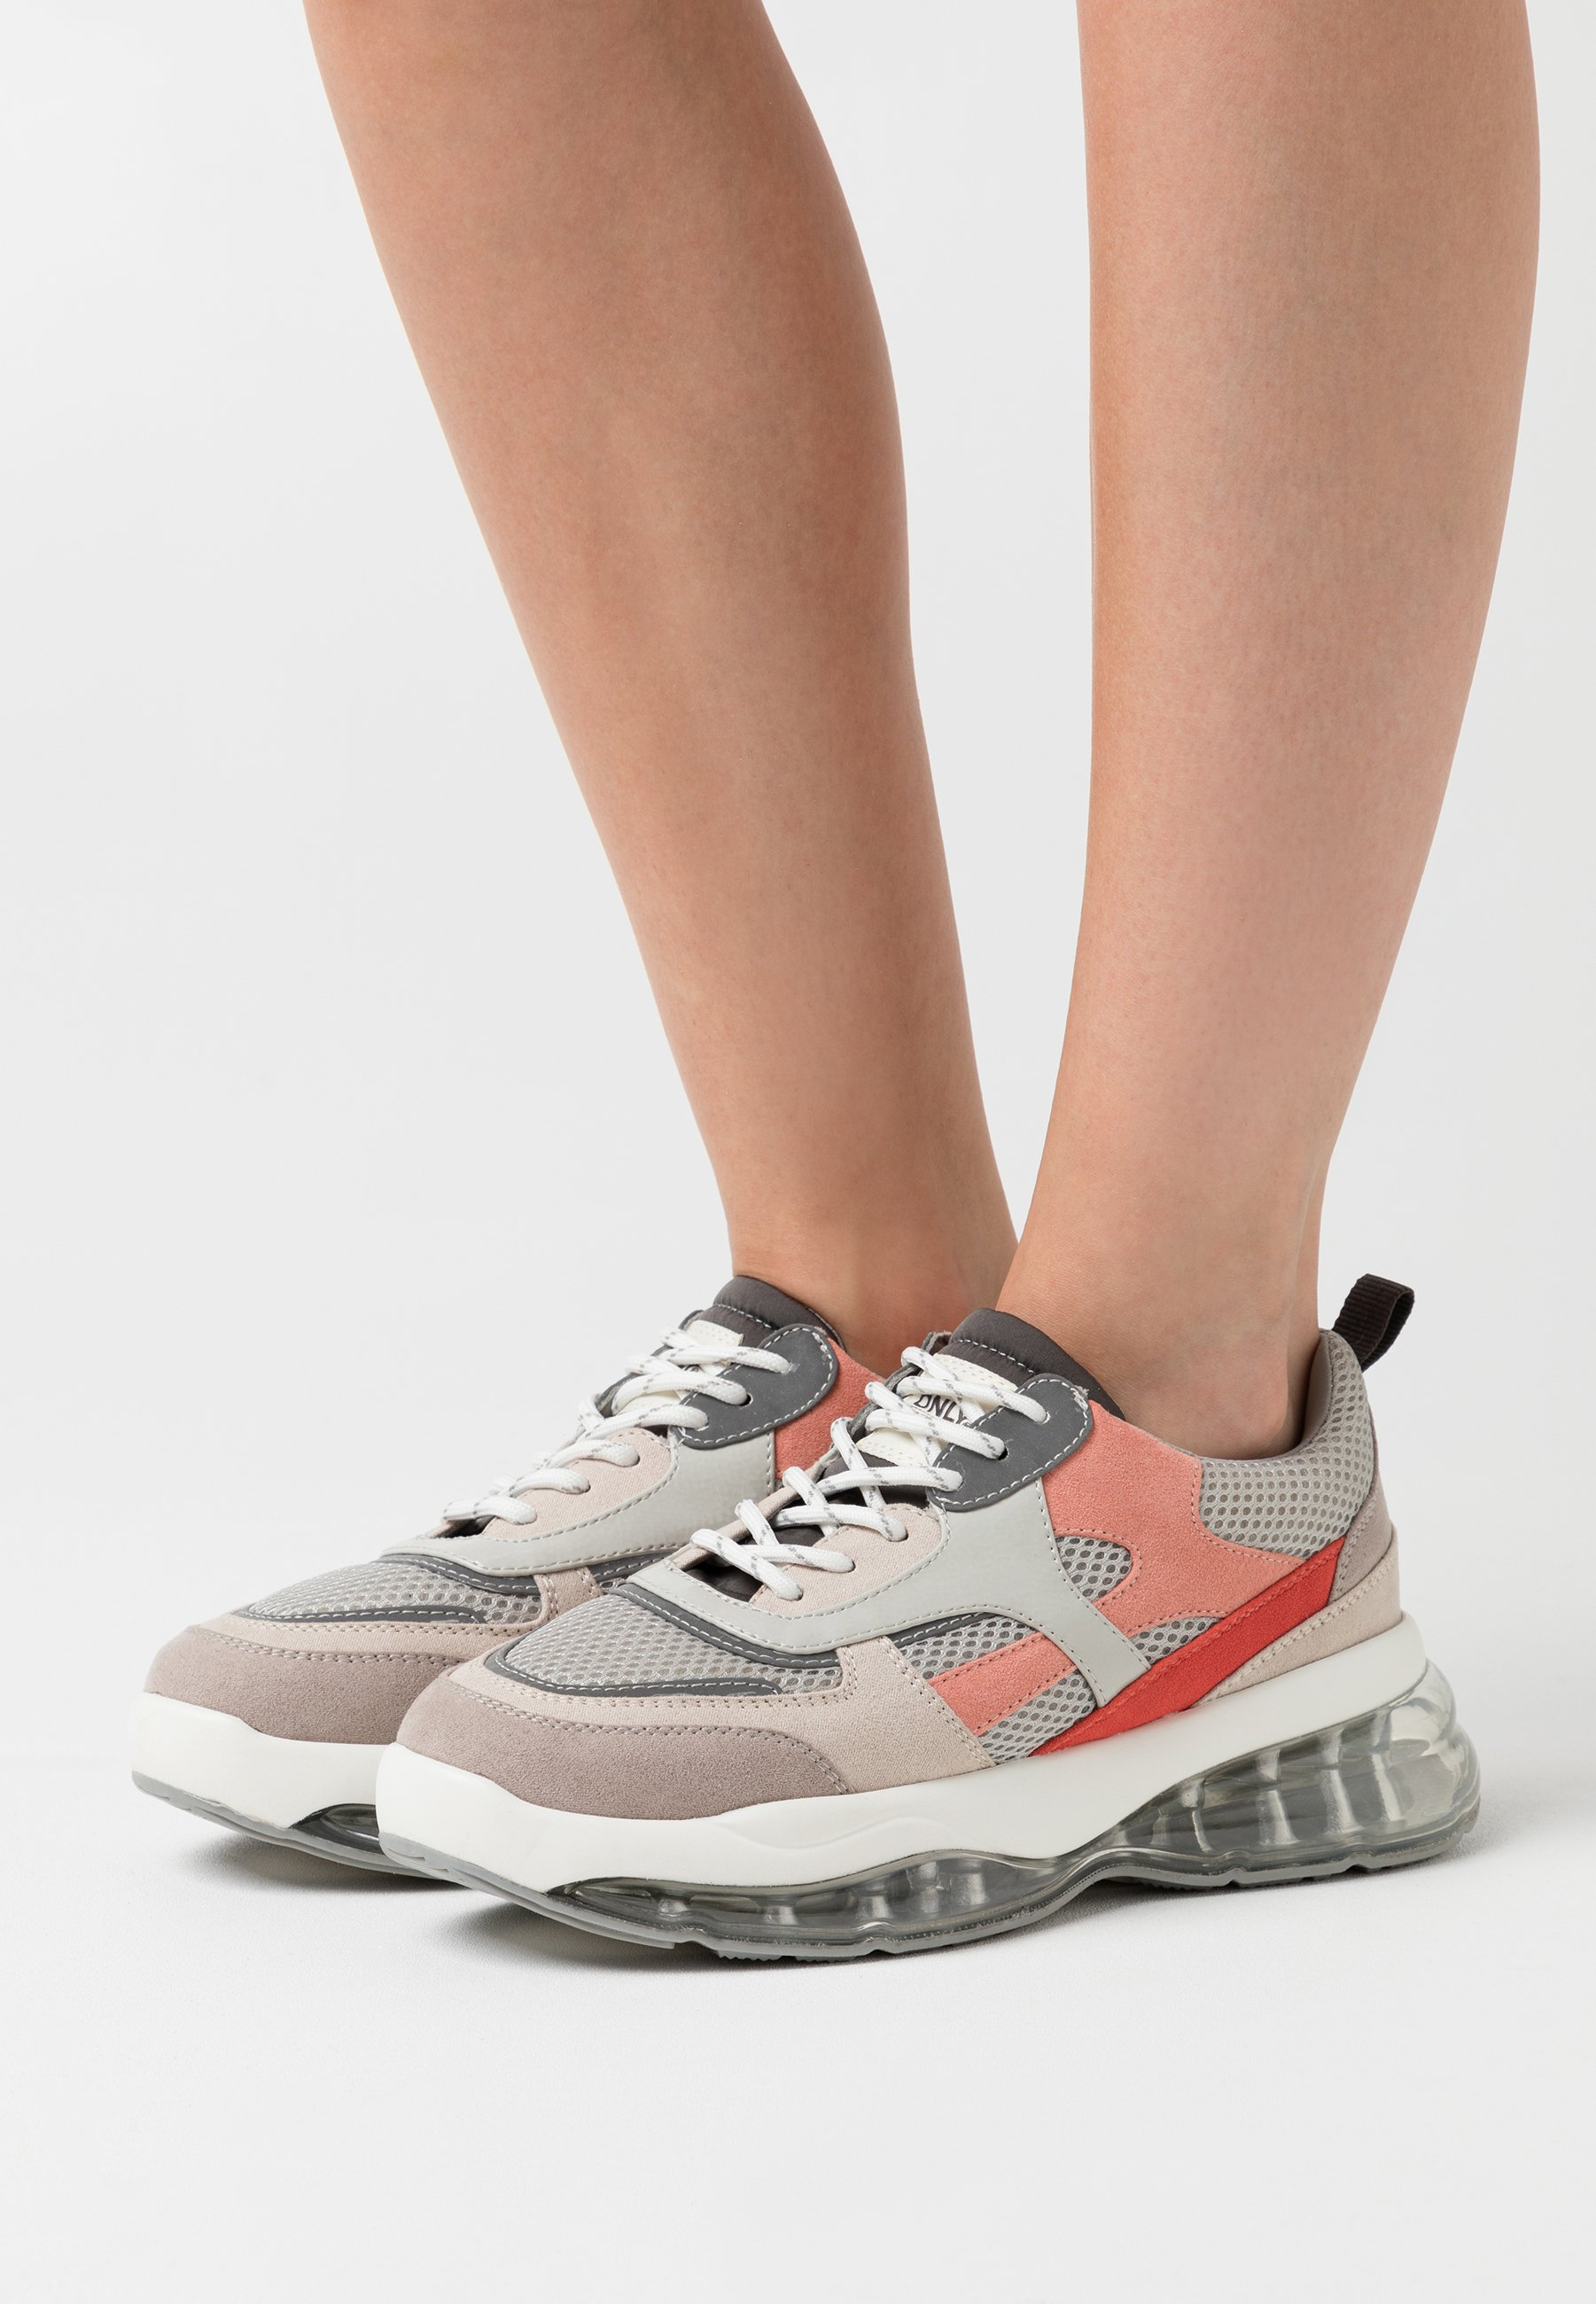 ONLY SHOES - ONLSPRING - Sneakers basse - grey